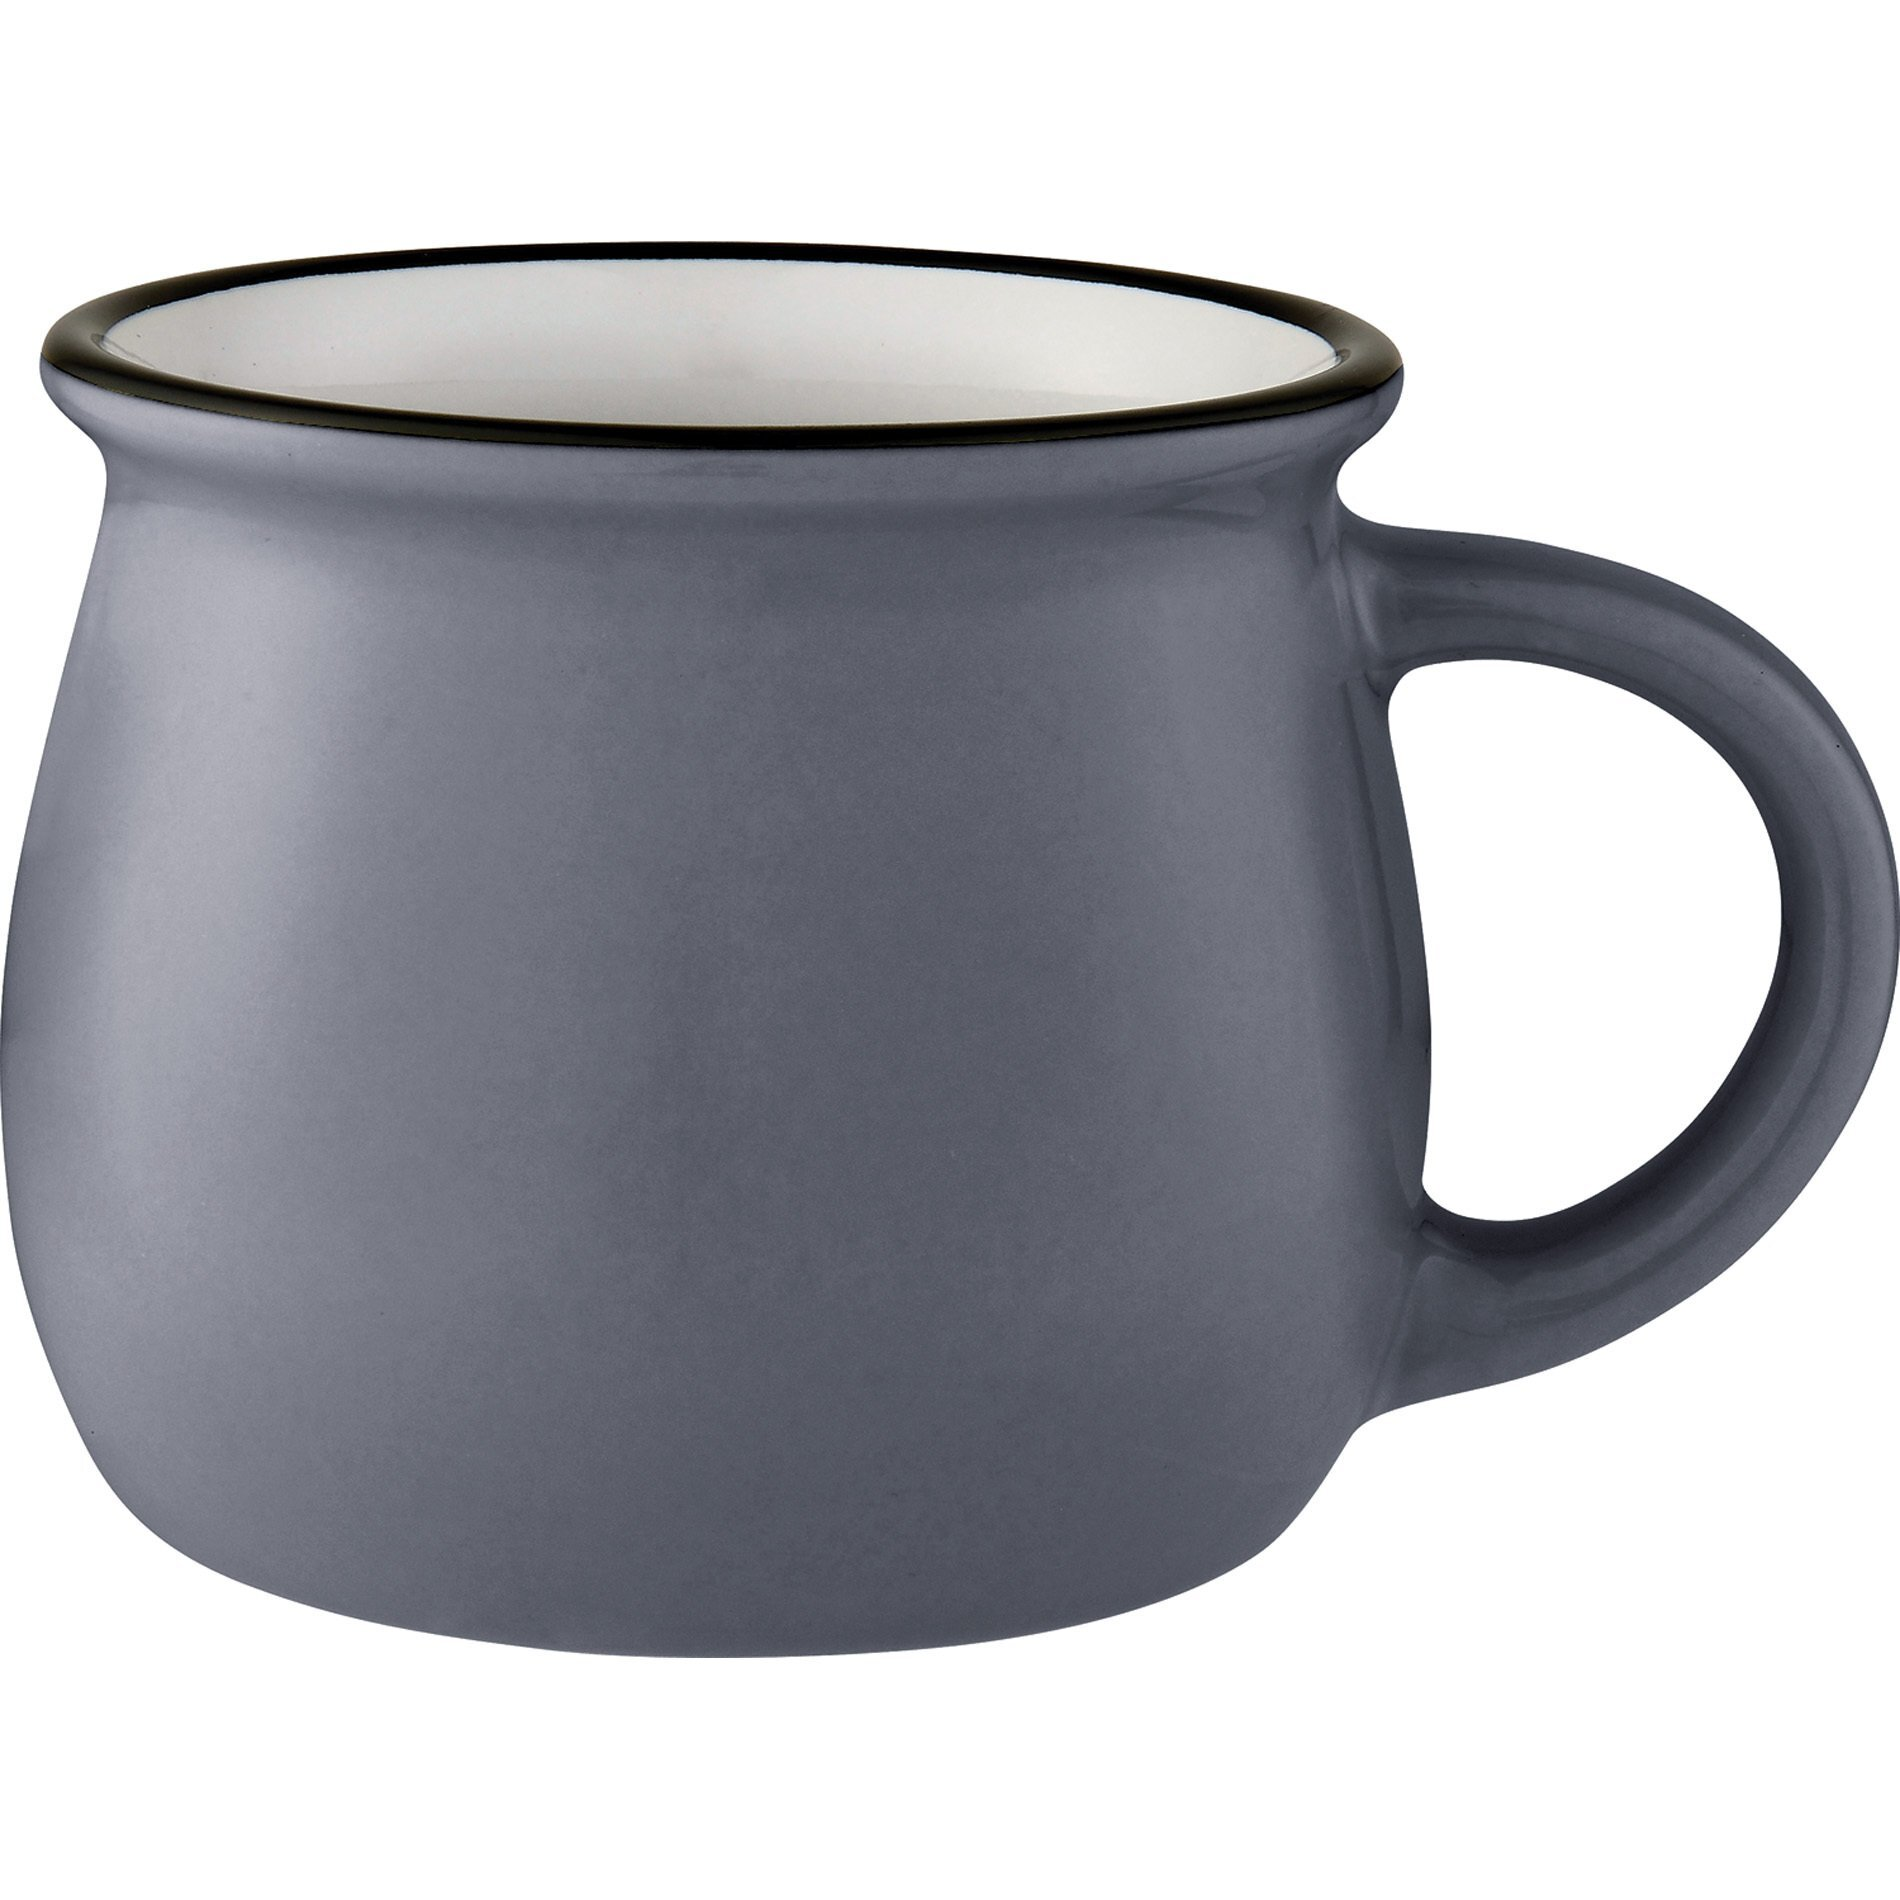 Pixie Ceramic Mug, 14oz. - Free Set Up Charges!